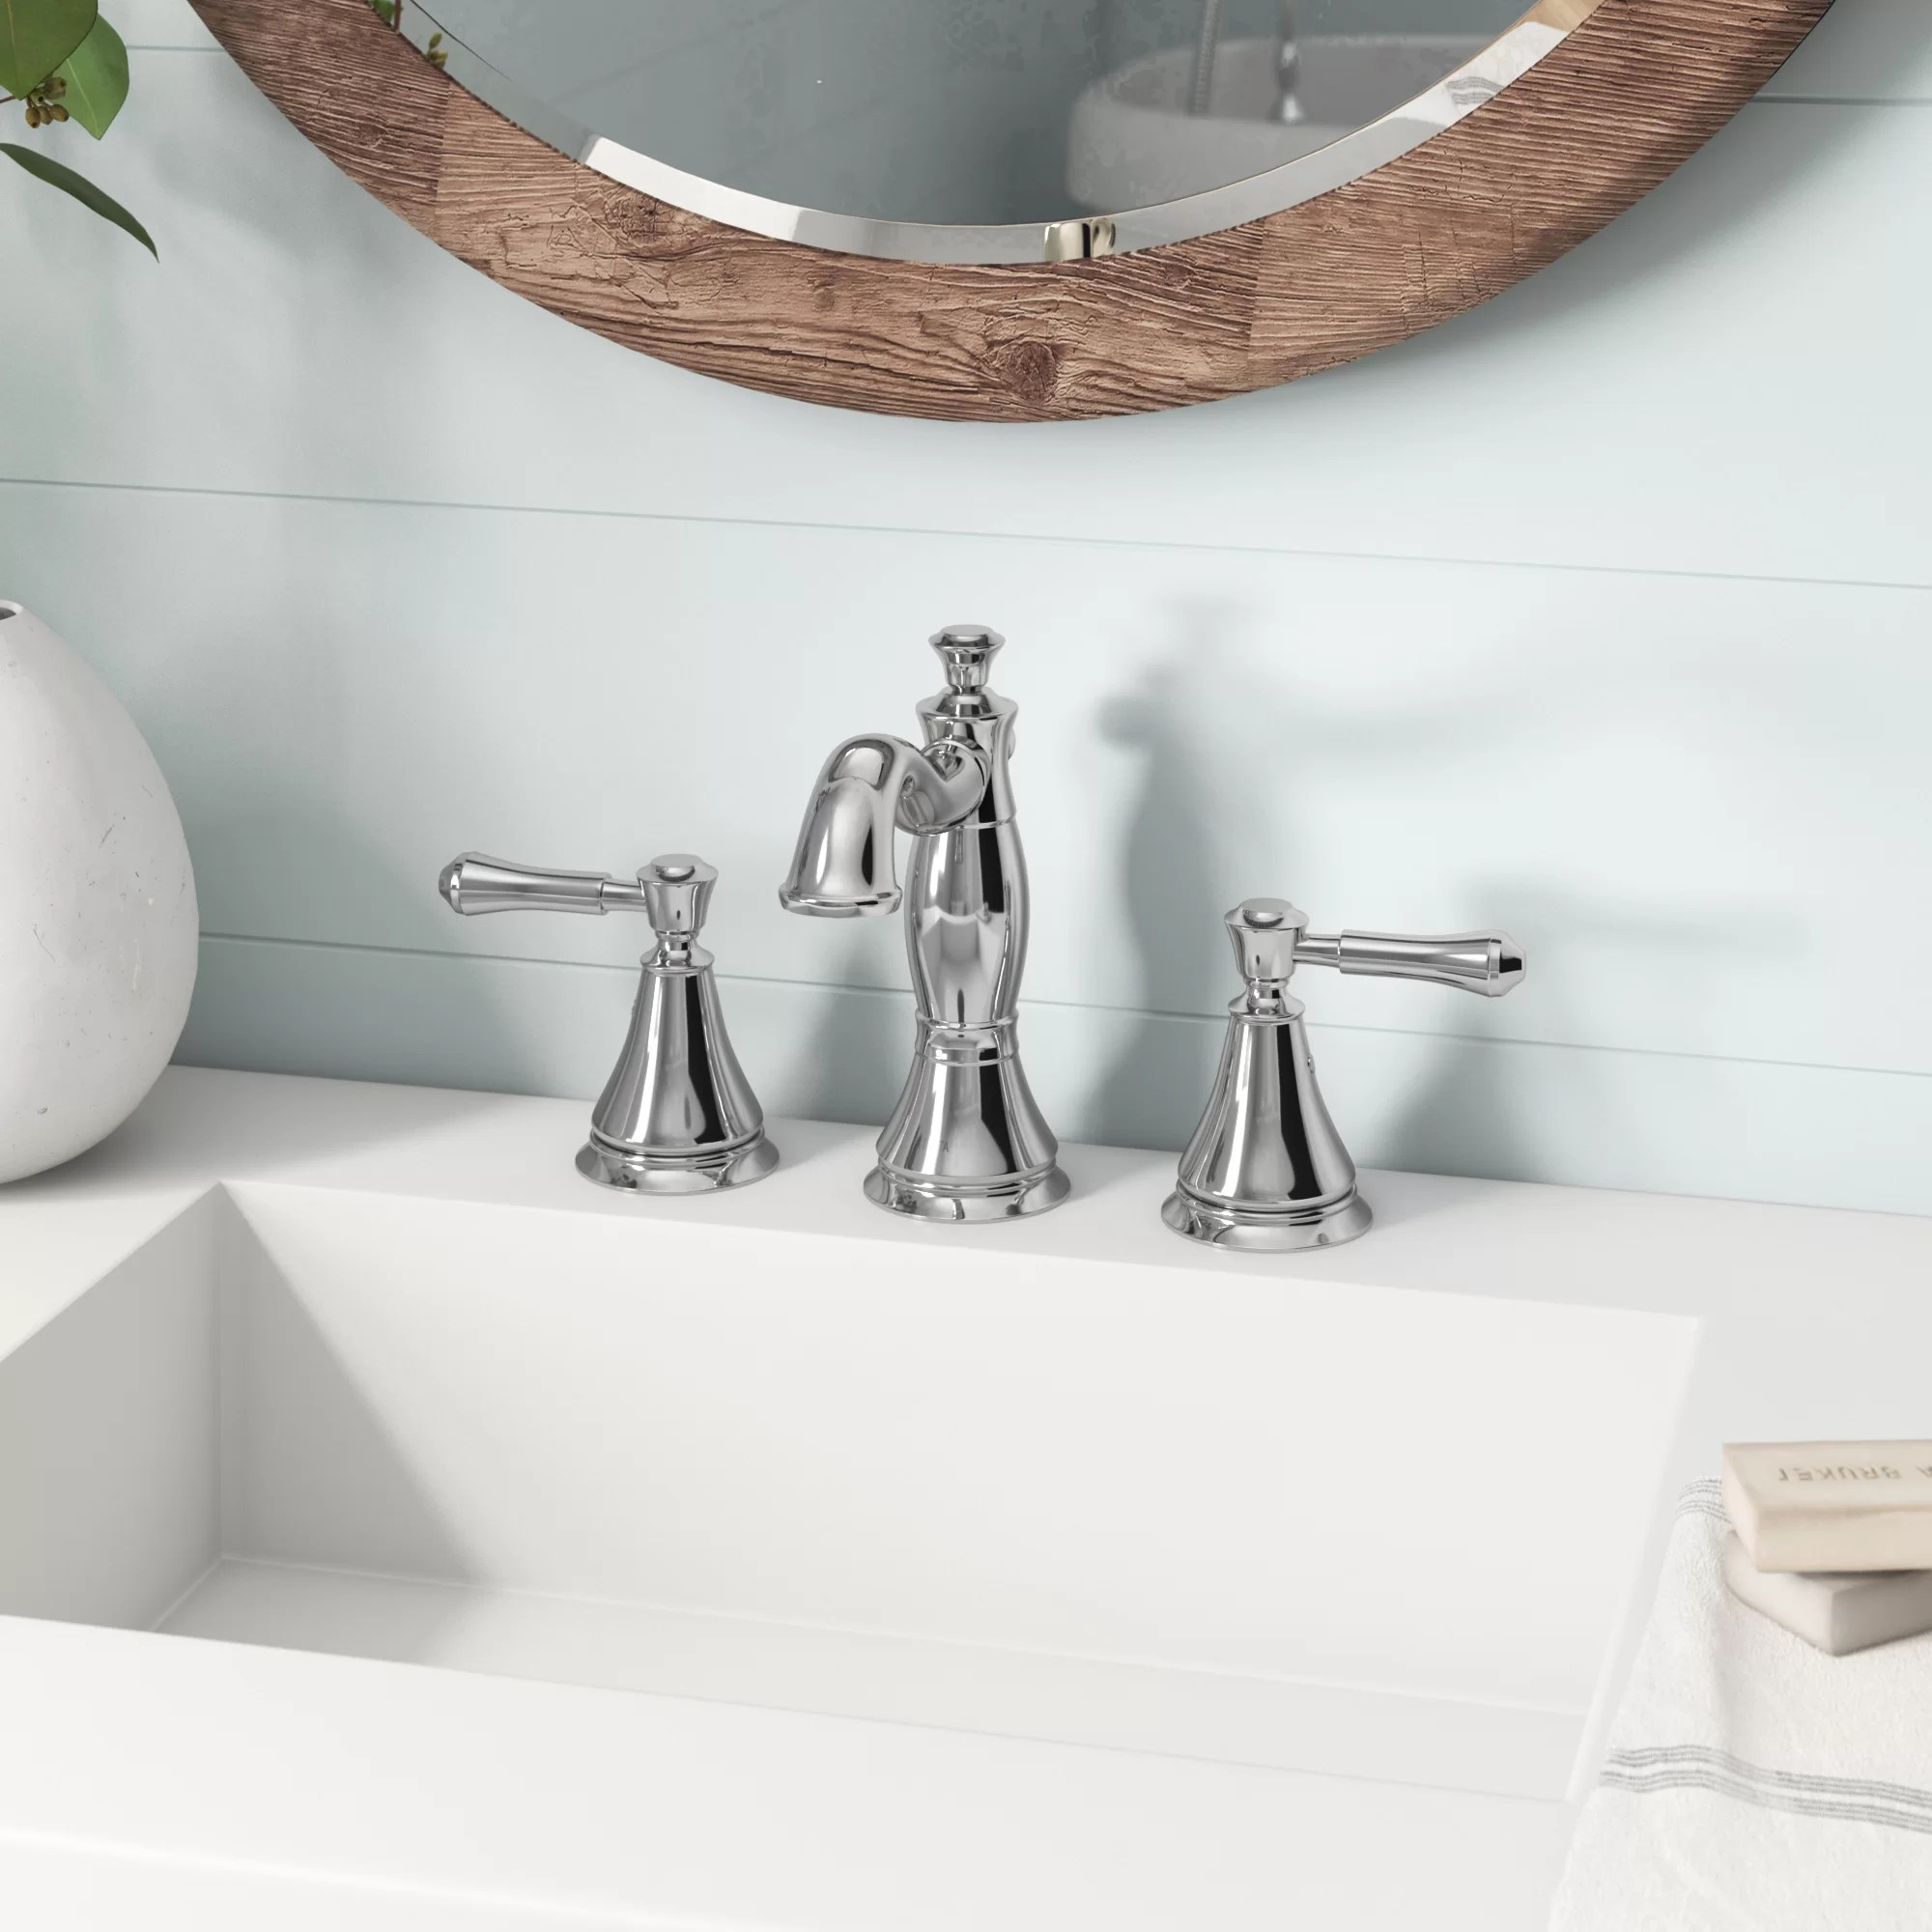 cassidy deck widespread bathroom faucet with drain assembly